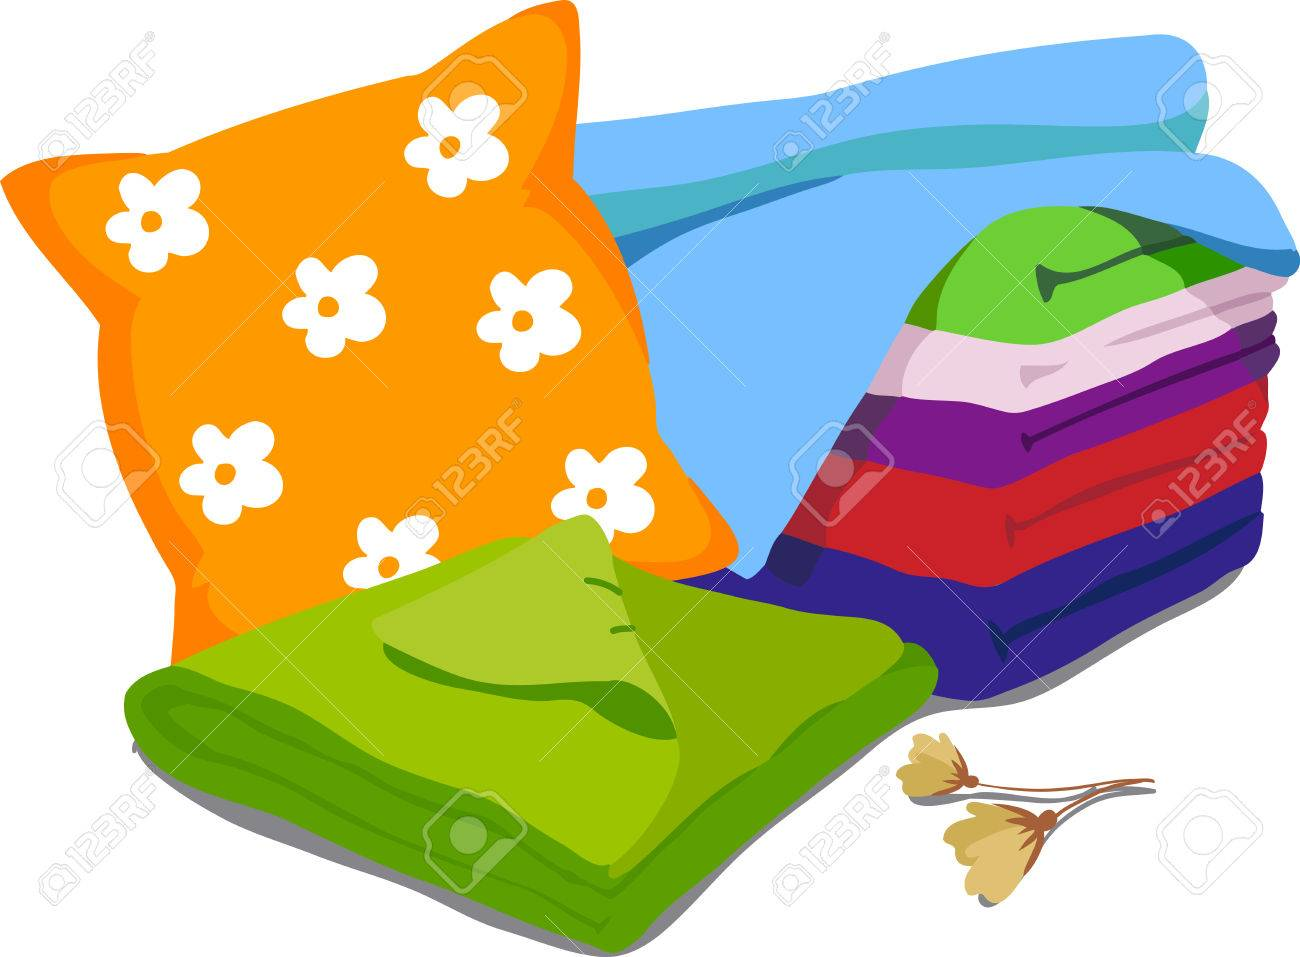 Color Bed Linen. Pillows, Sheets, Blankets. Vector Illustration ... for Pillow And Blanket Clipart  45jwn